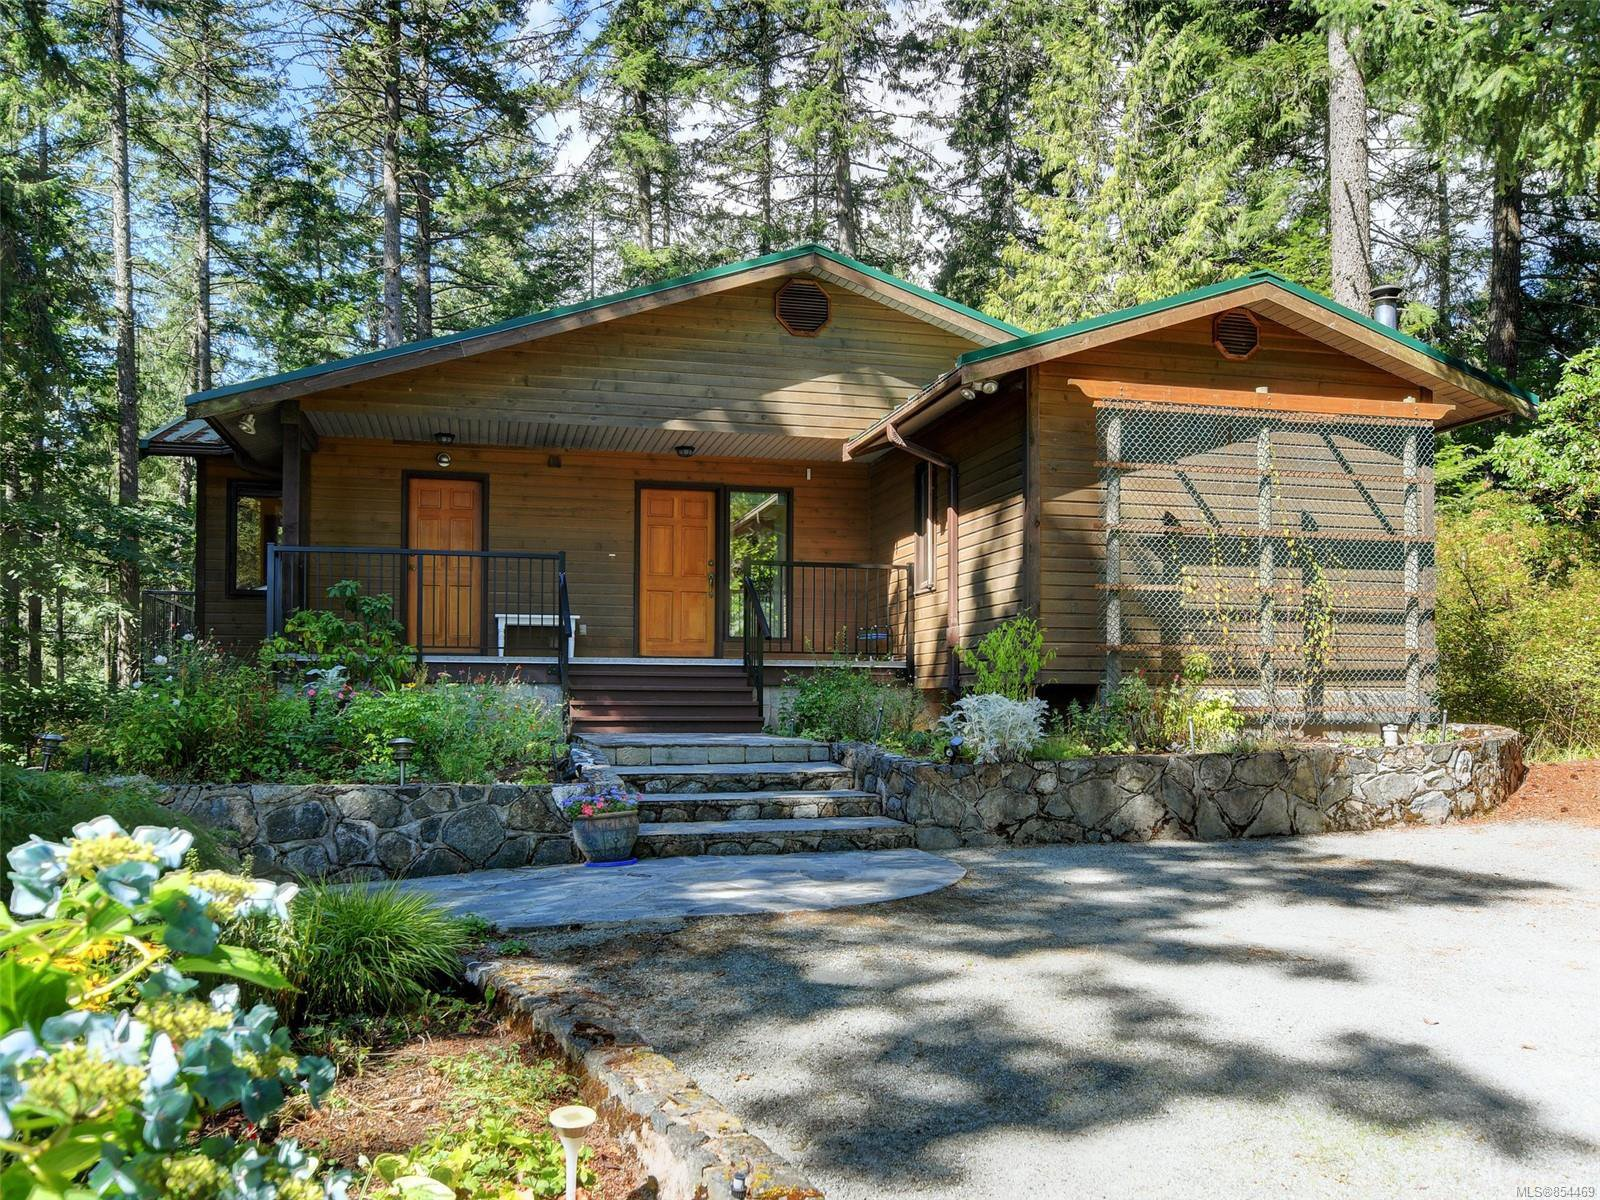 Main Photo: 4970 Prospect Lake Rd in : SW Prospect Lake House for sale (Saanich West)  : MLS®# 854469